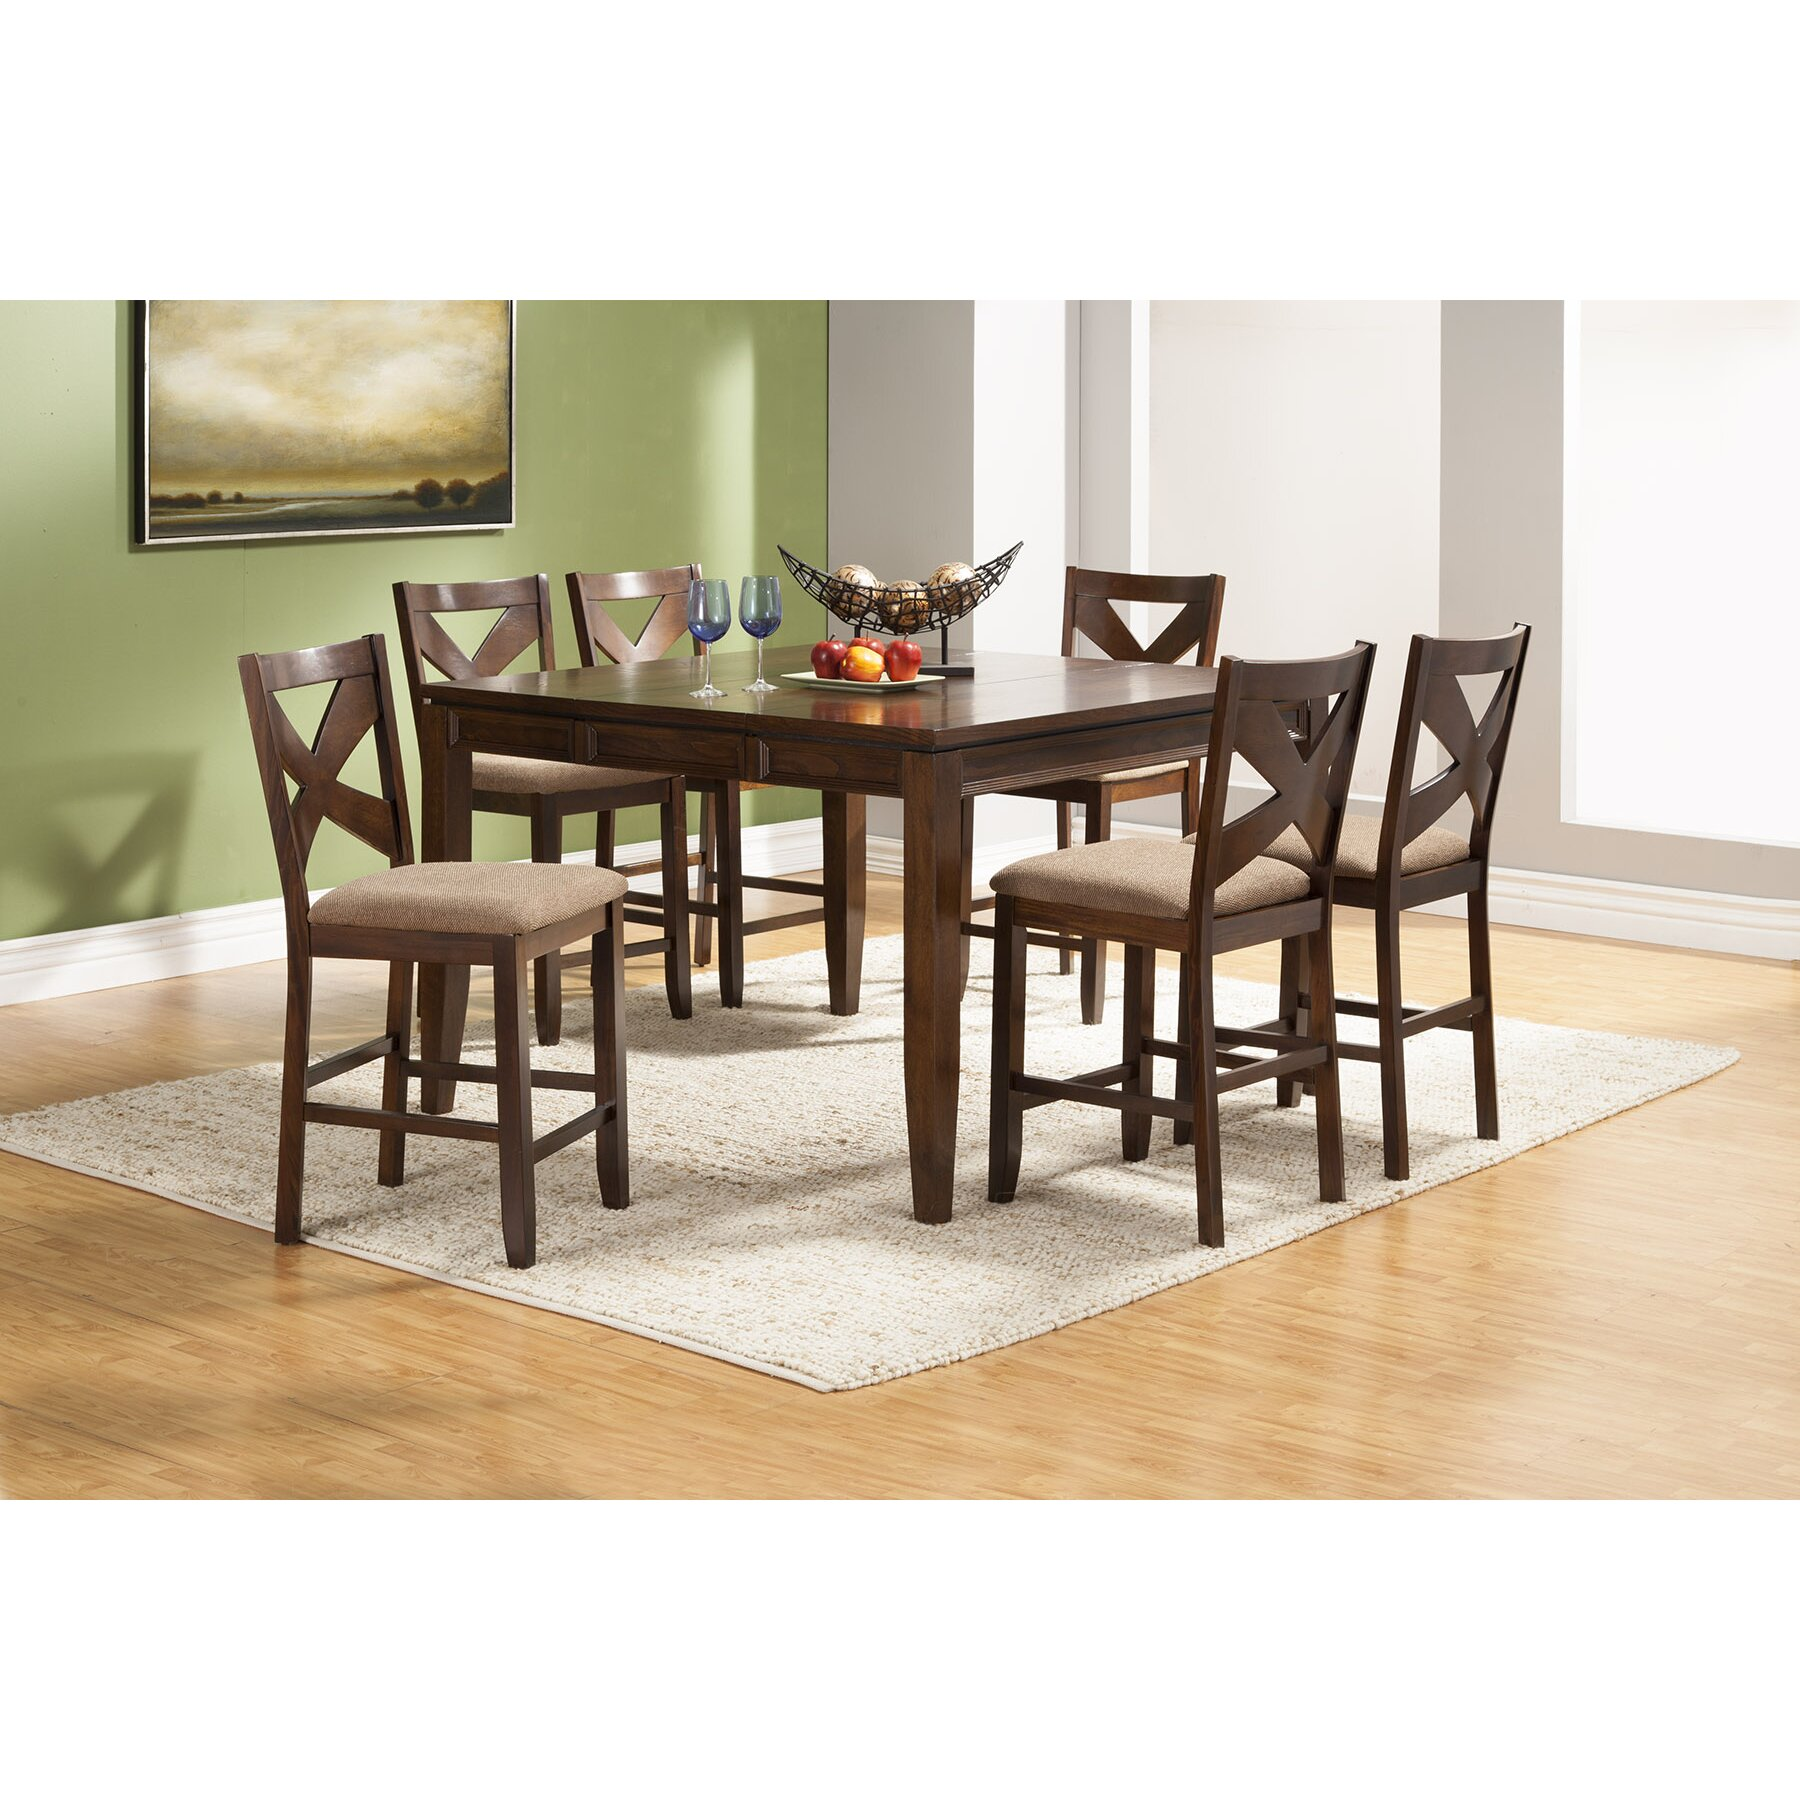 Kitchen Counters Albany Ny: Alpine Furniture Albany 7 Piece Counter Height Dining Set